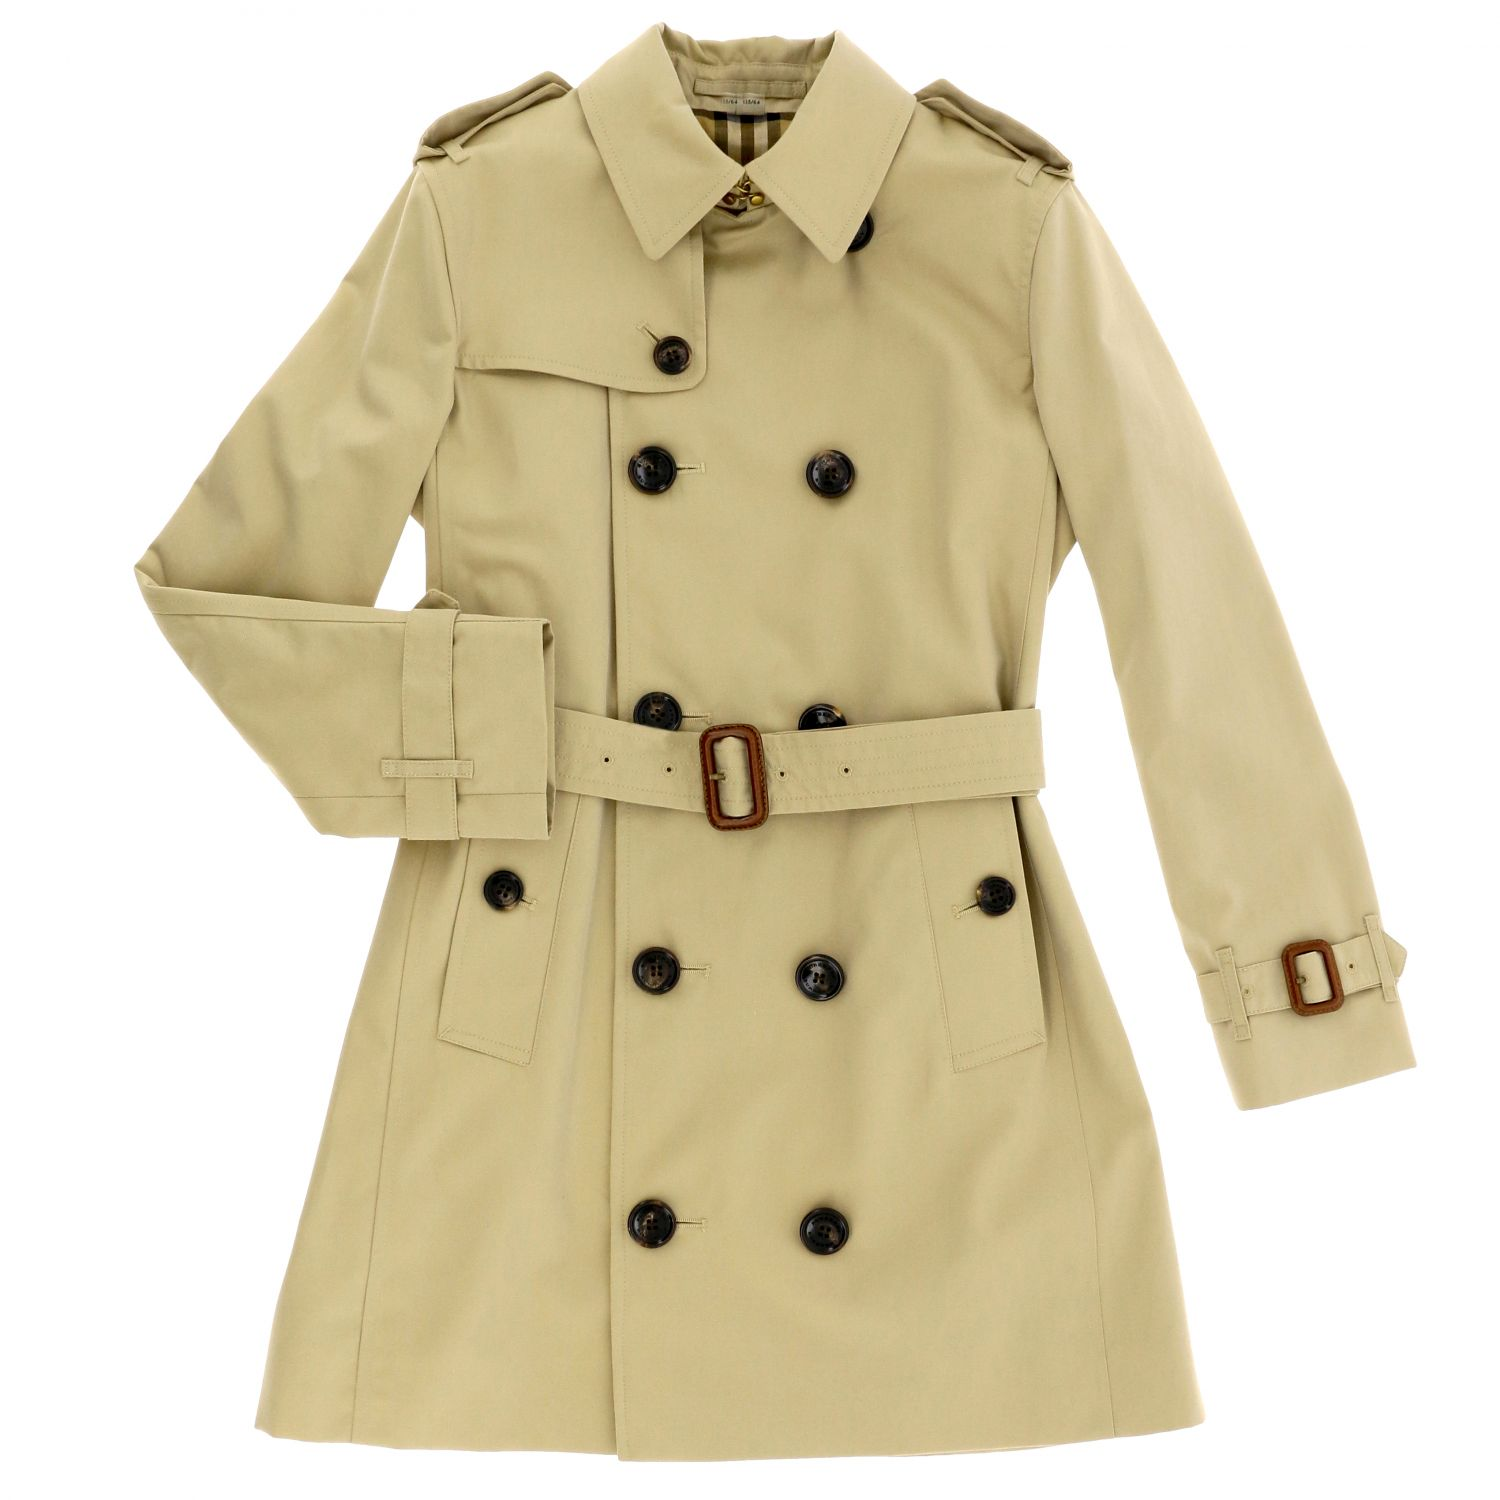 Burberry cotton gabardine trench coat beige 1